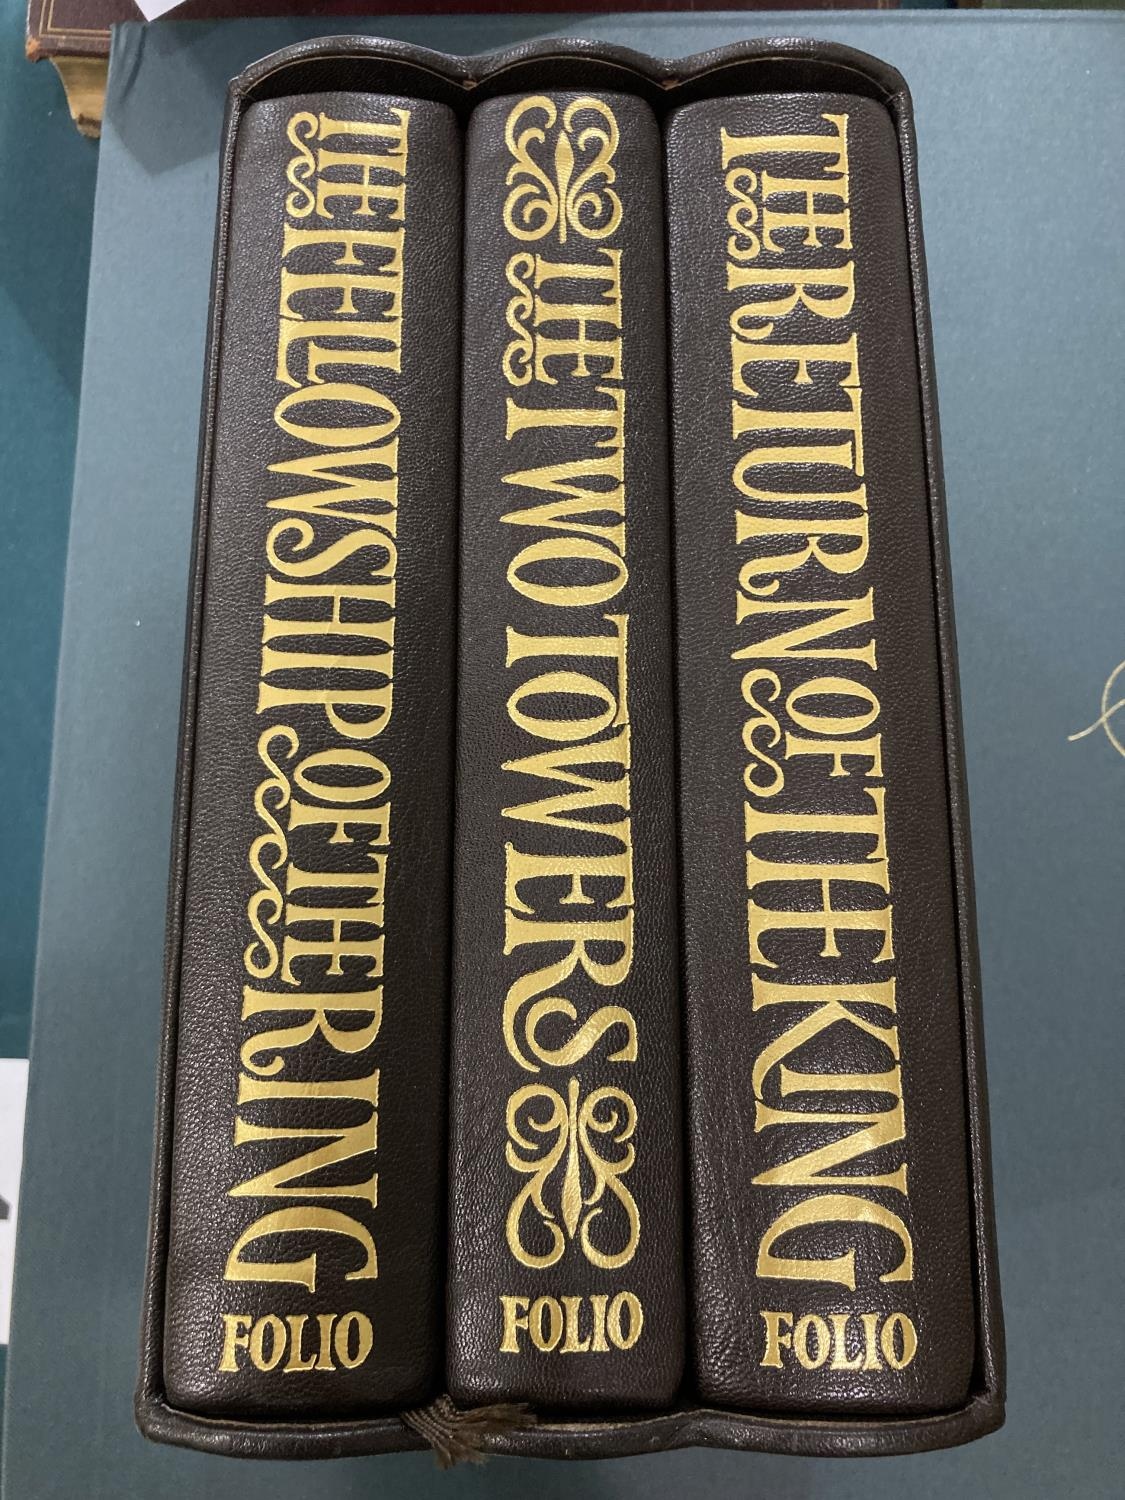 Folio Society. A group of 74 volumes, mostly literature and poetry, various bindings, most with - Image 15 of 20